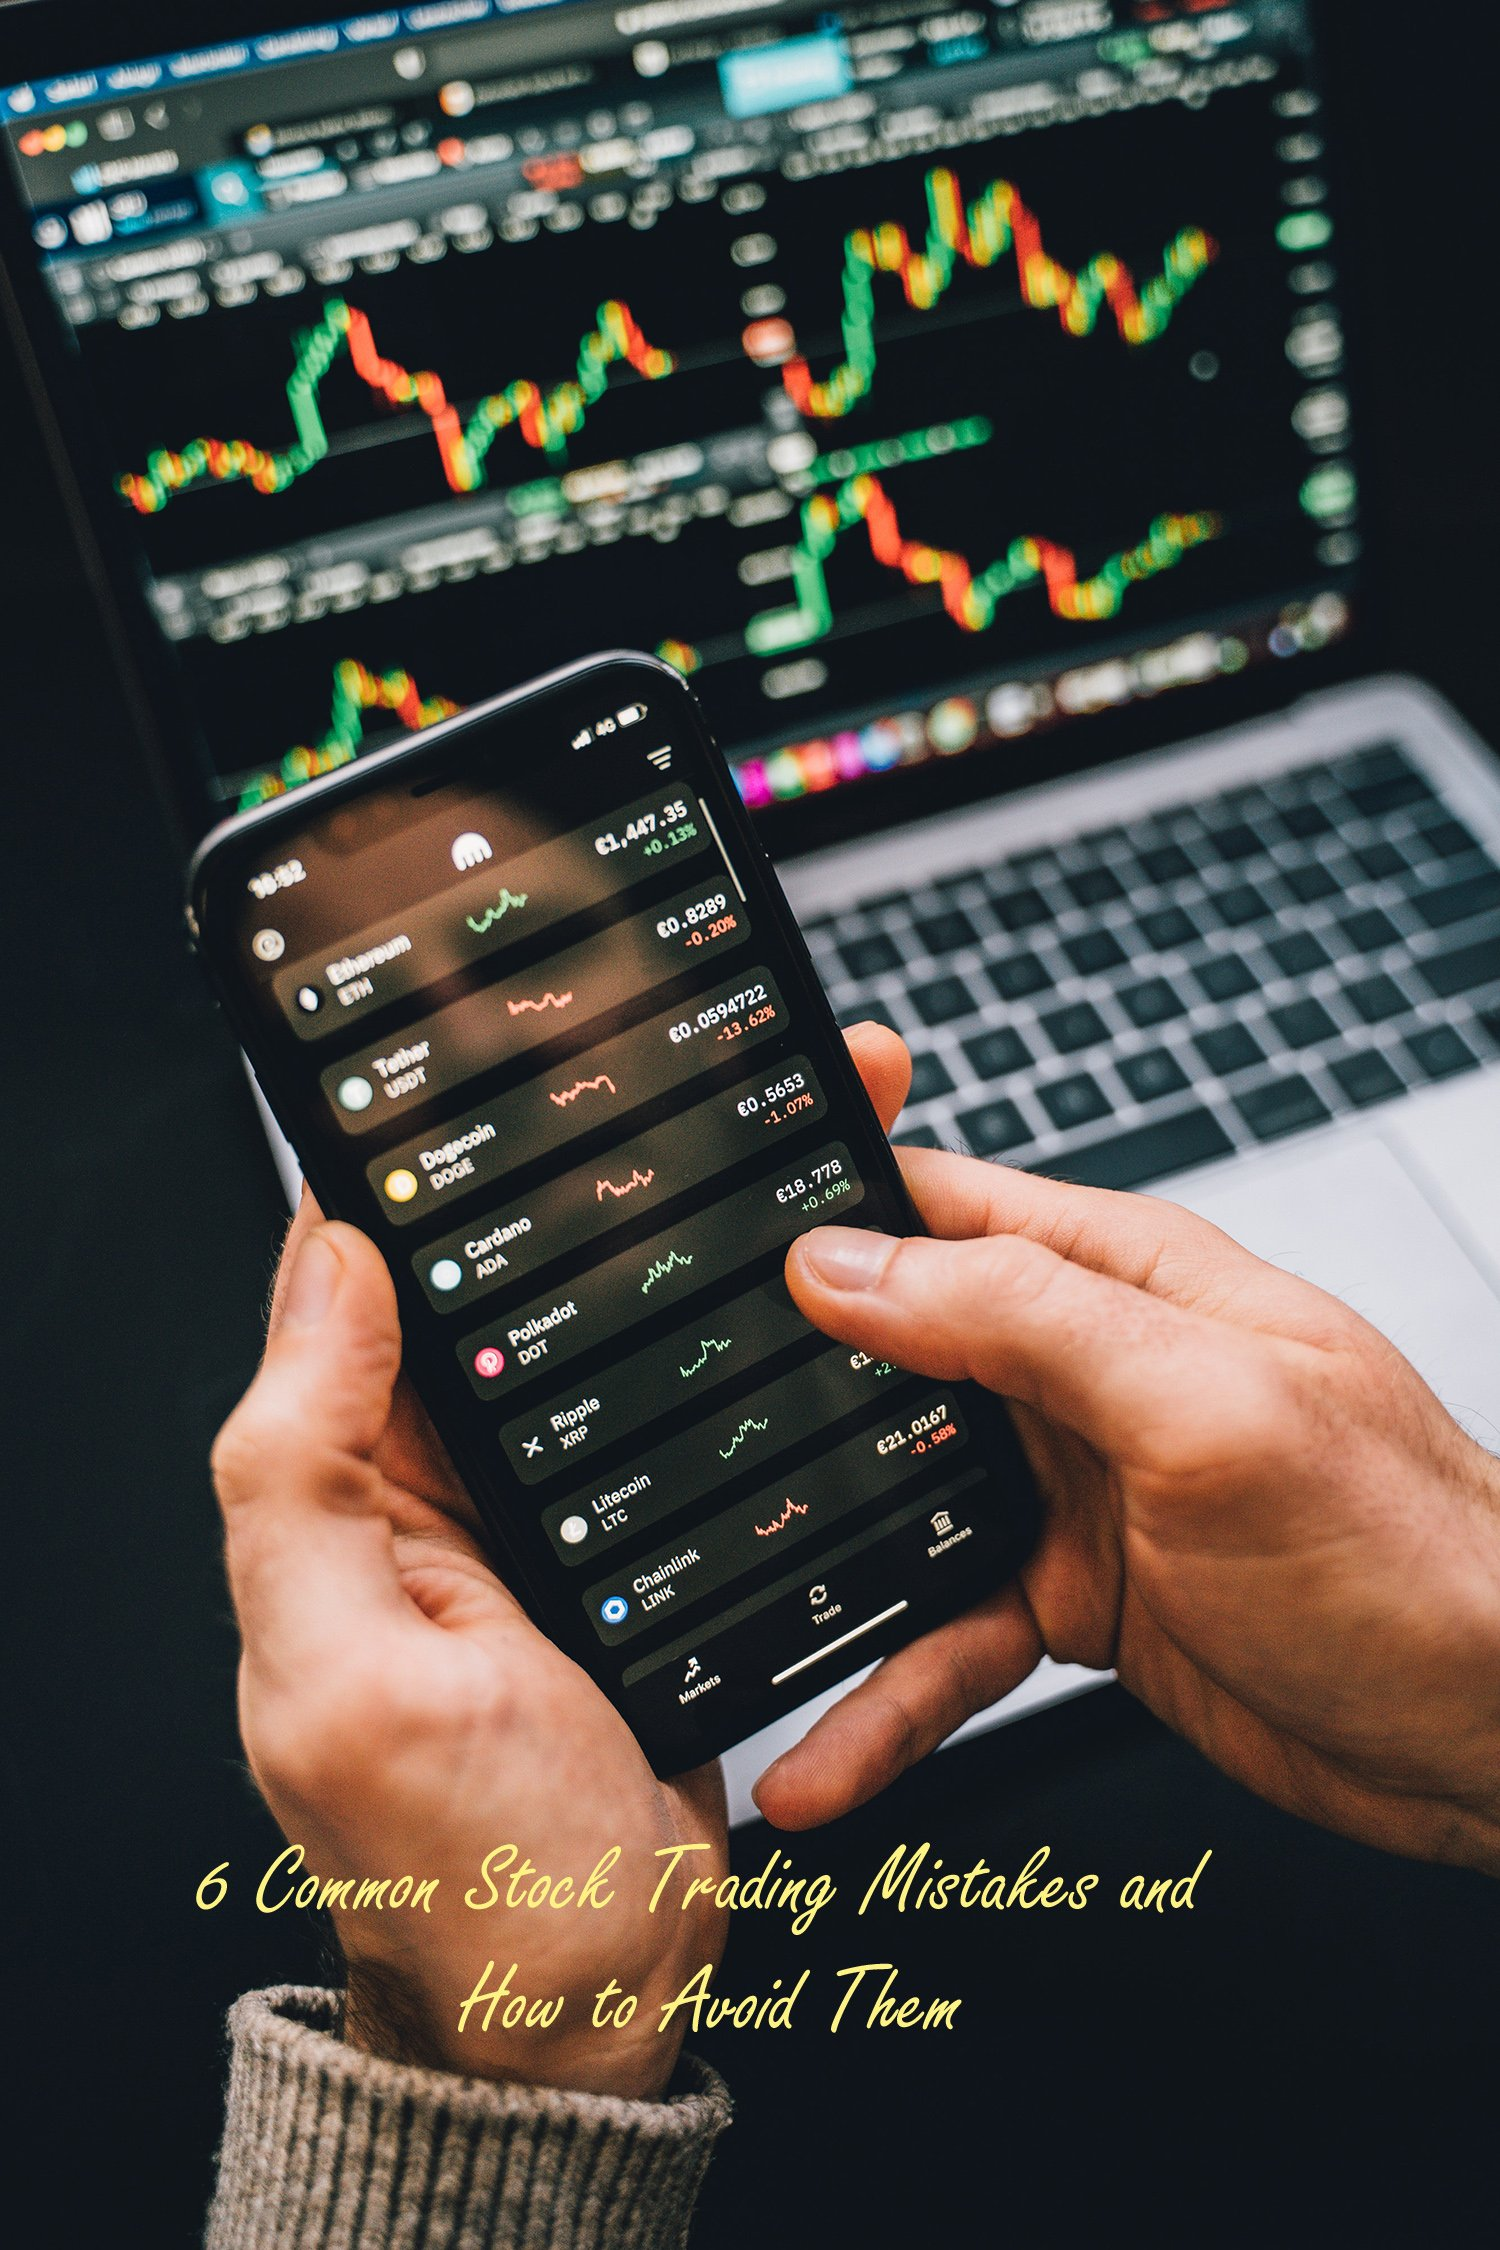 6 Common Stock Trading Mistakes and How to Avoid Them